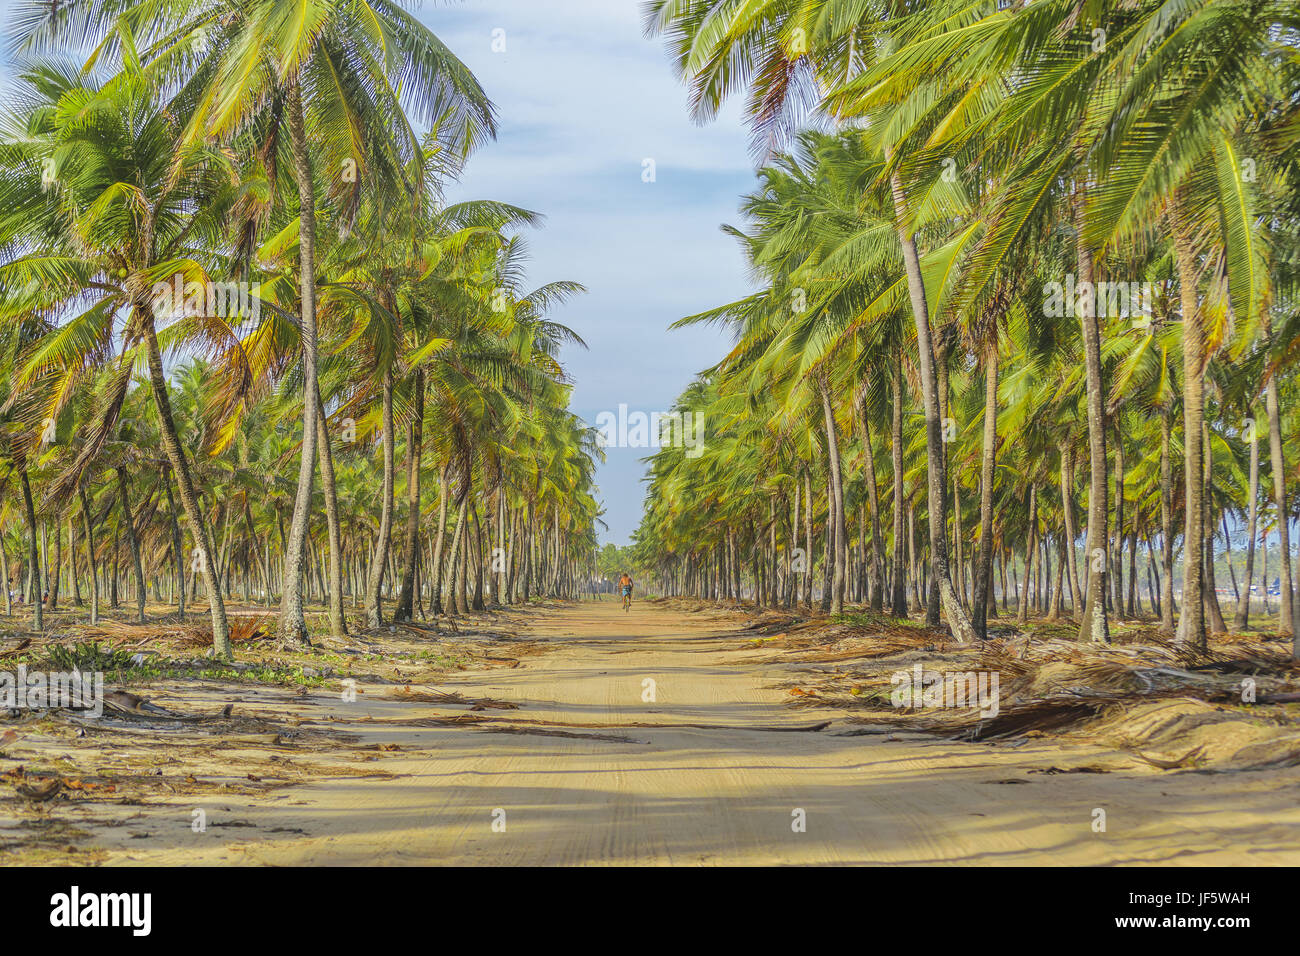 Earth Topical Road Porto Galinhas Brazil - Stock Image